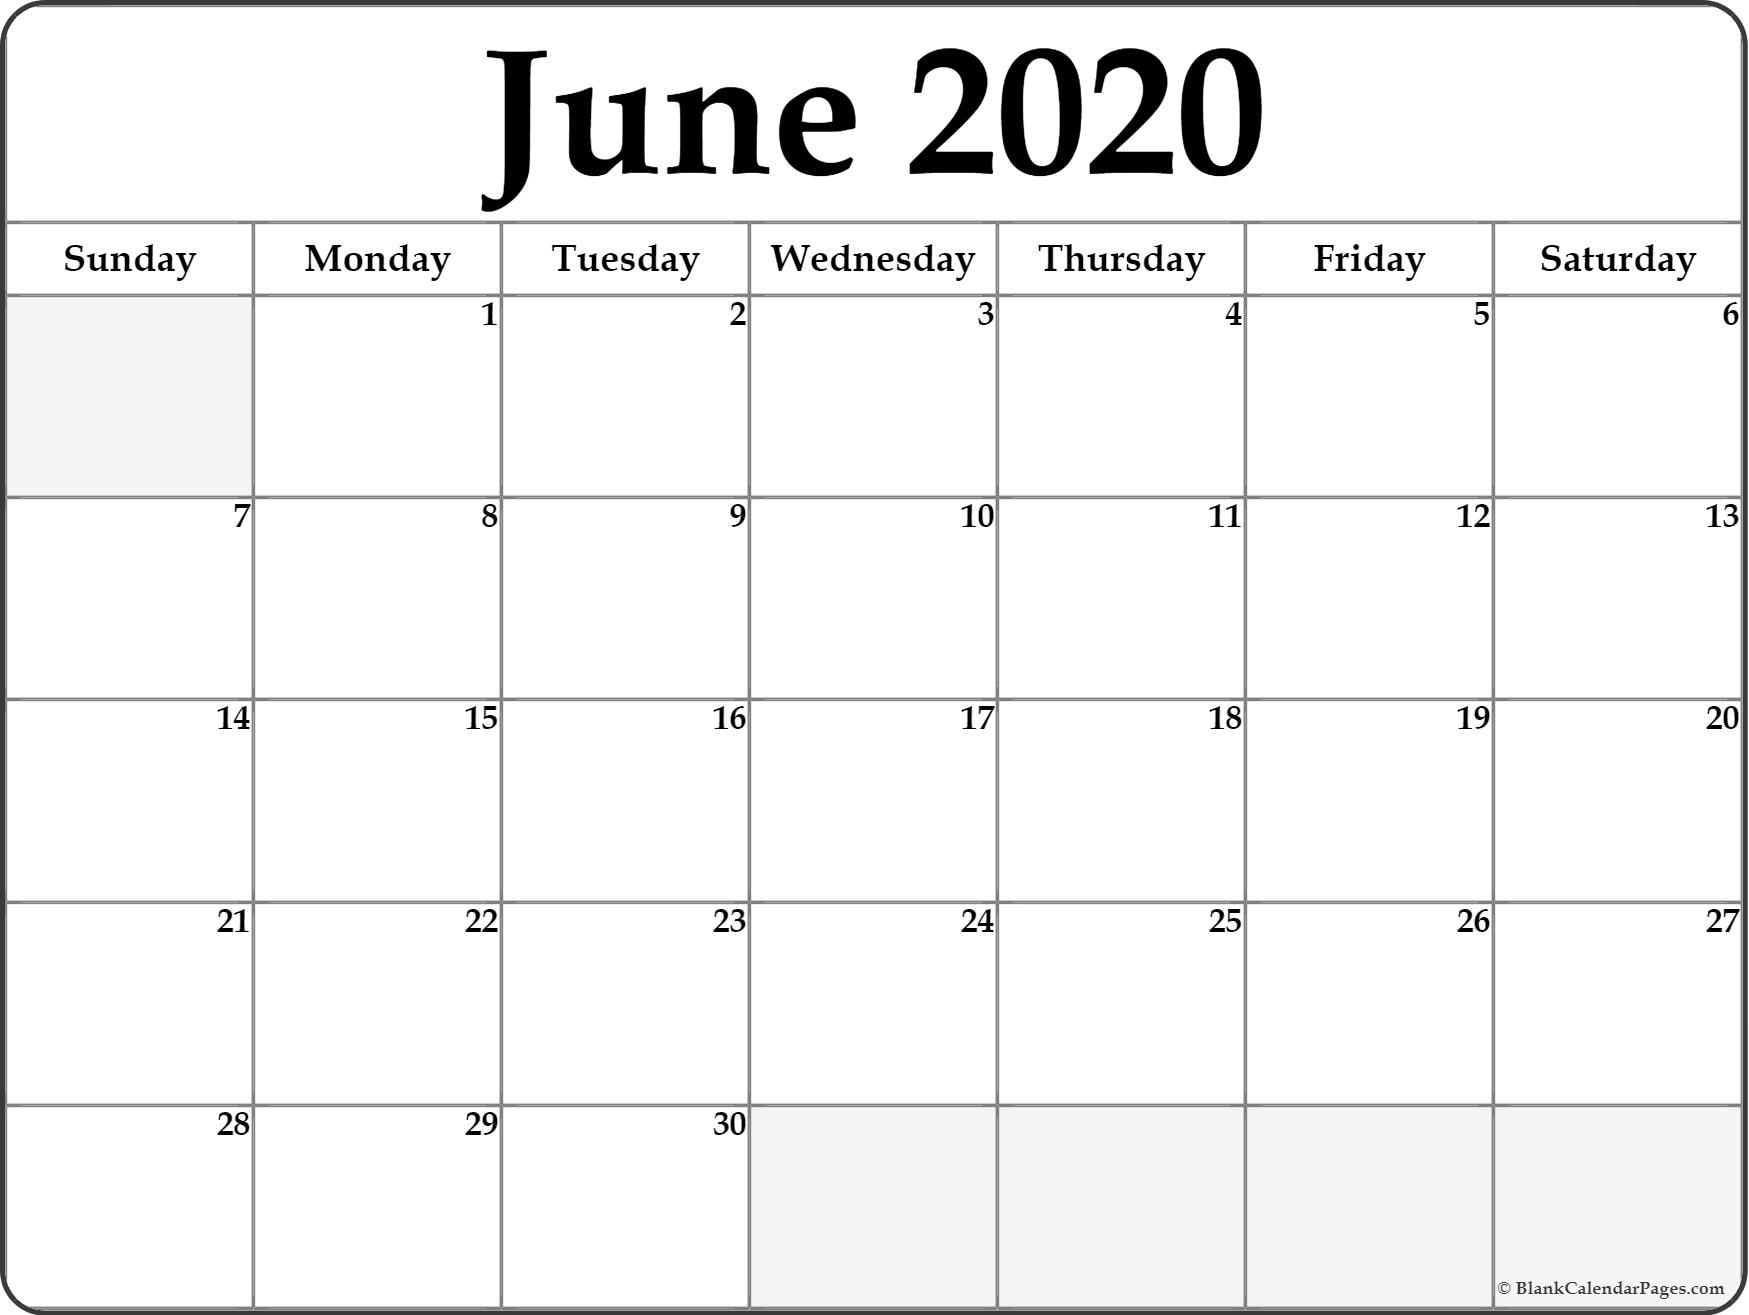 June 2020 Calendar | Free Printable Monthly Calendars in Free Printed Calendars From June 2019 To June 2020